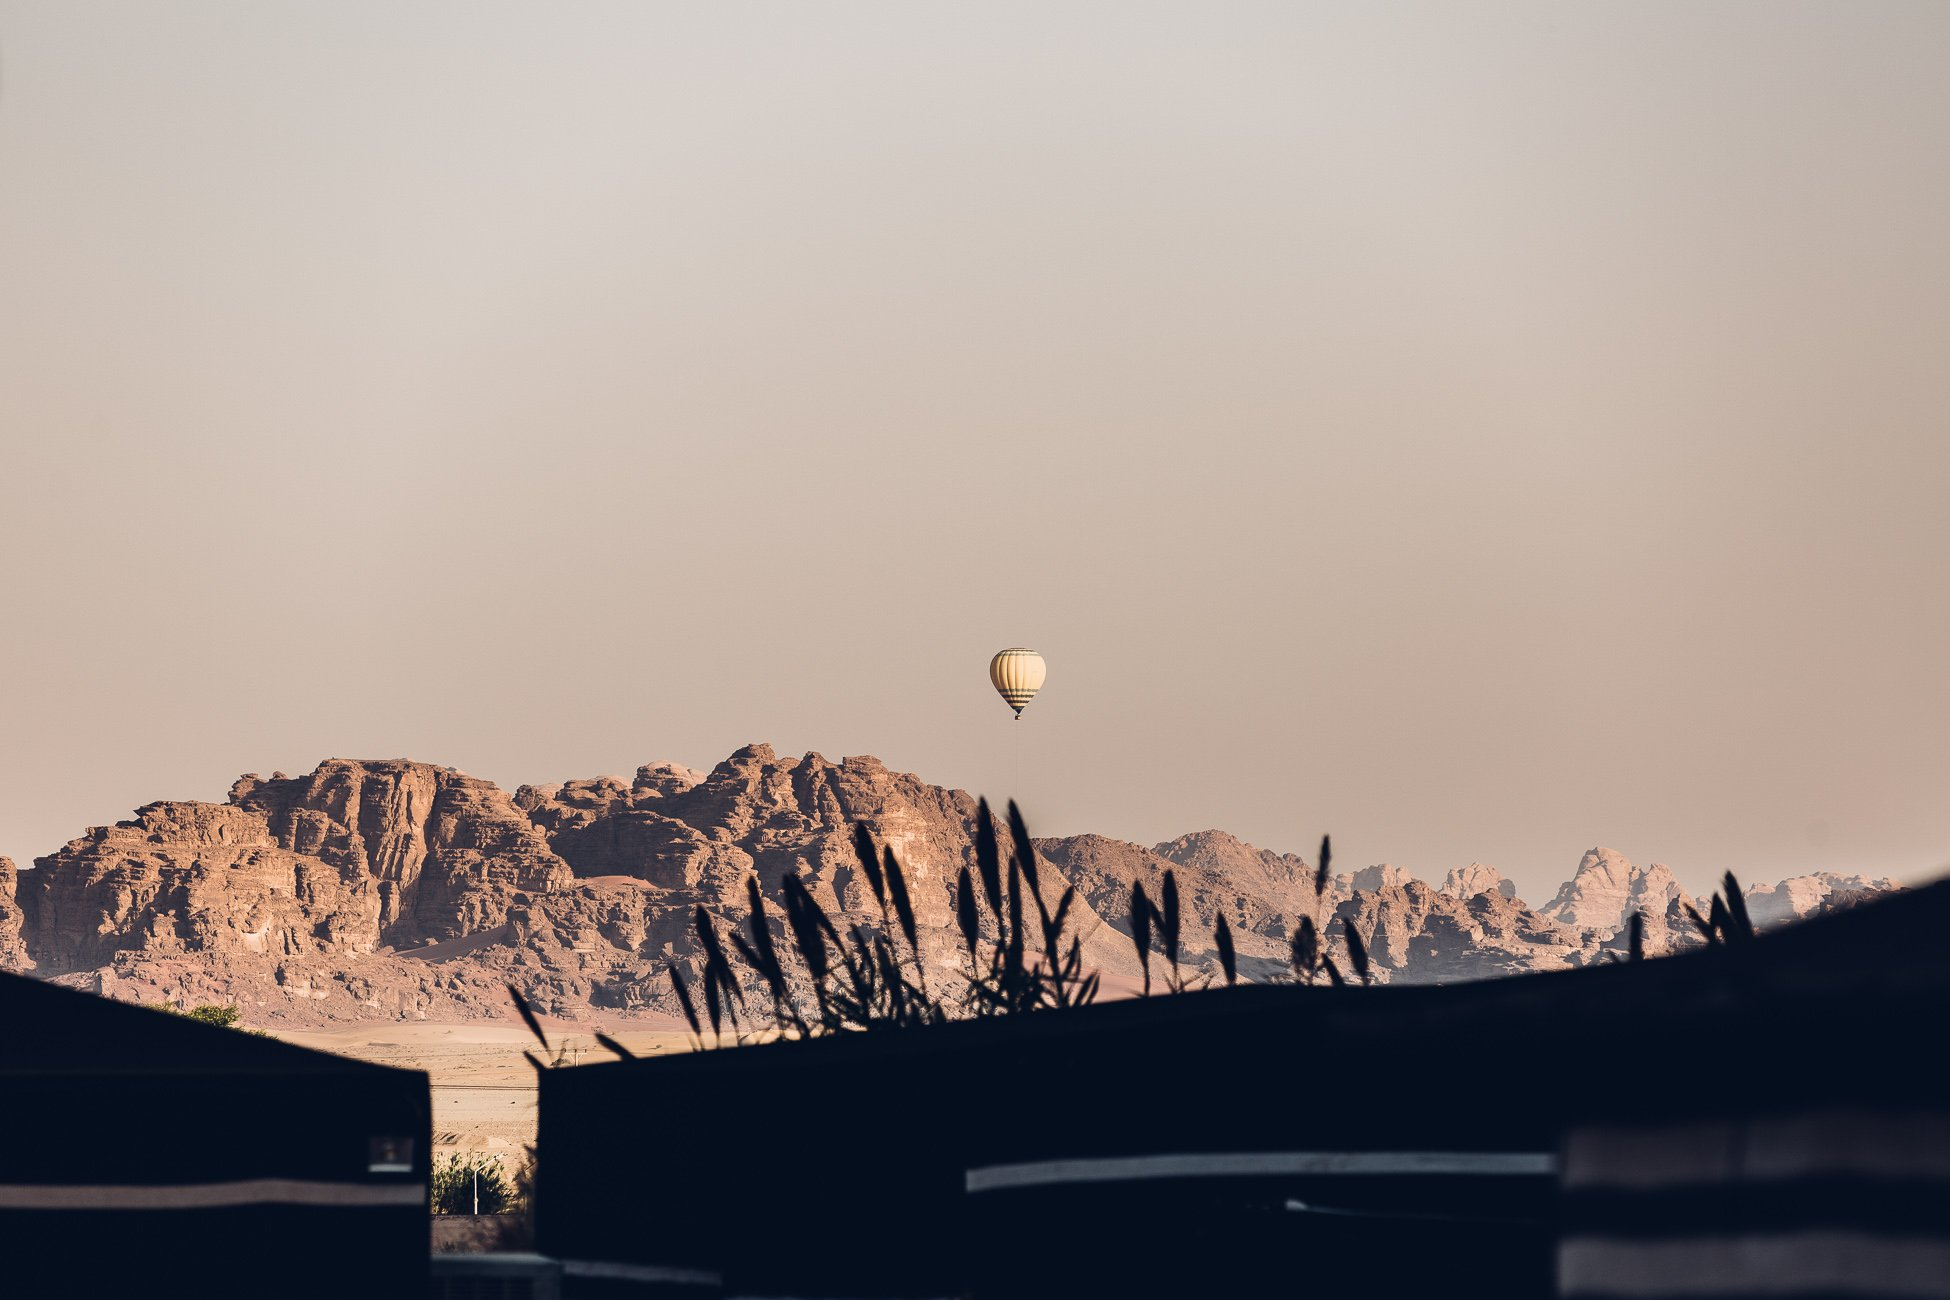 Hot Air Balloon Ride in Wadi Rum Jordan